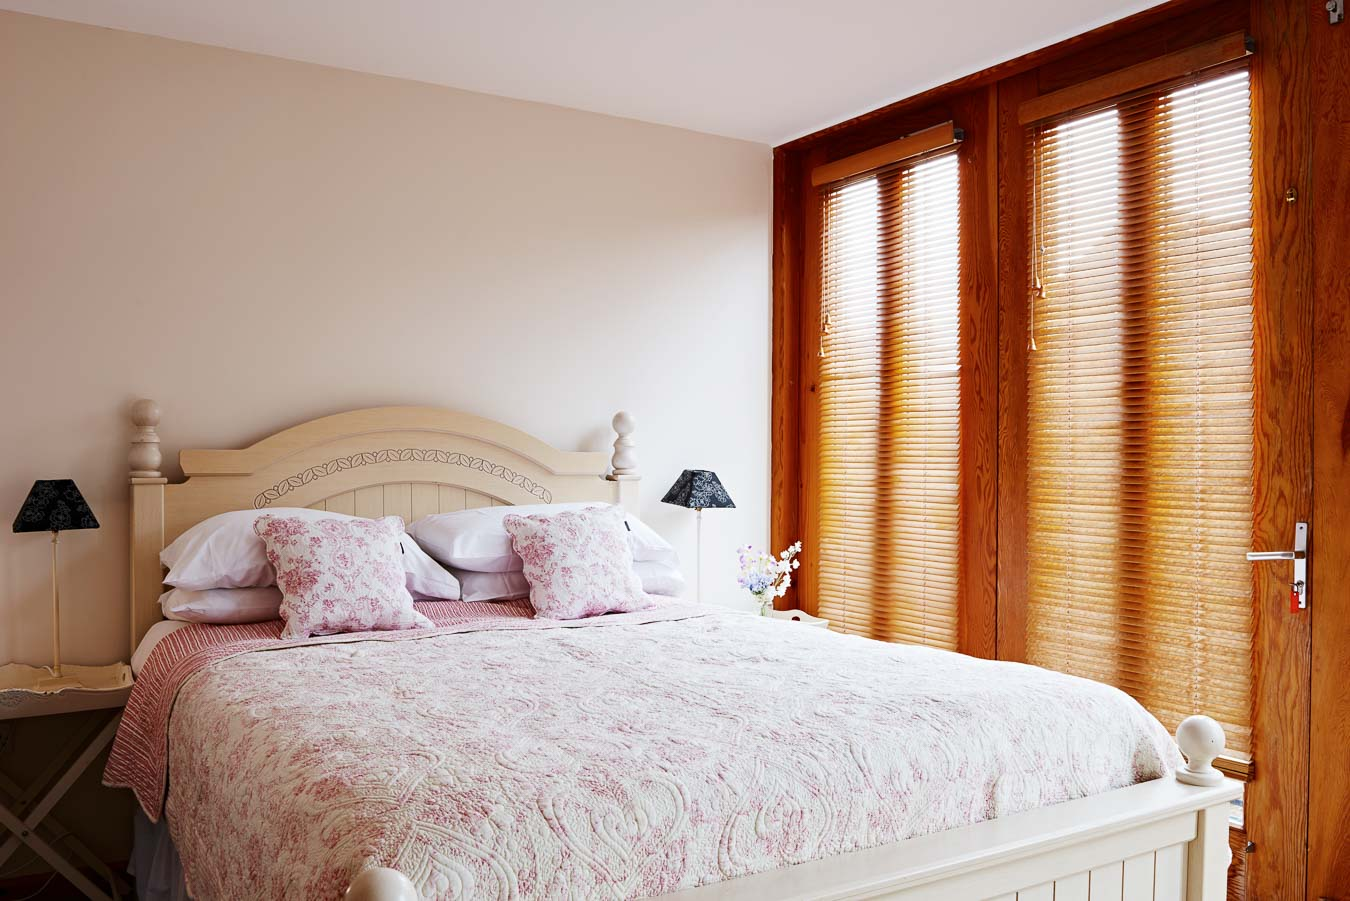 King size bedroom in Orchard Lodge At Flear Farm with ample built in storage, large windows and en suite.